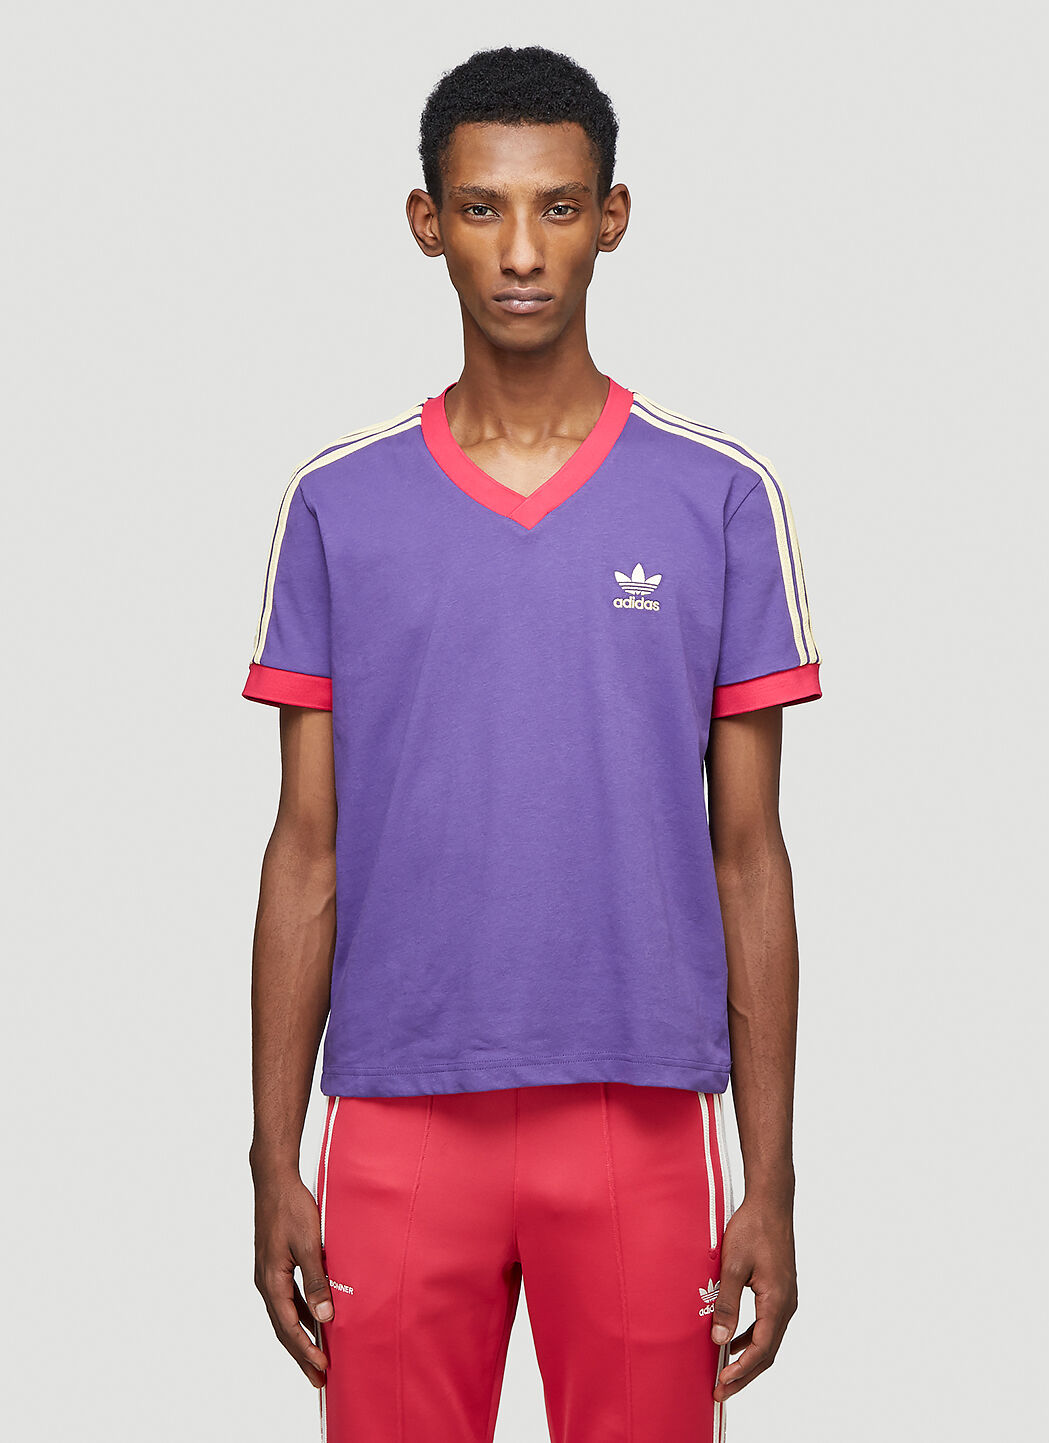 adidas by Wales Bonner Unisex 70s V-Neck T-Shirt in Purple | LN-CC